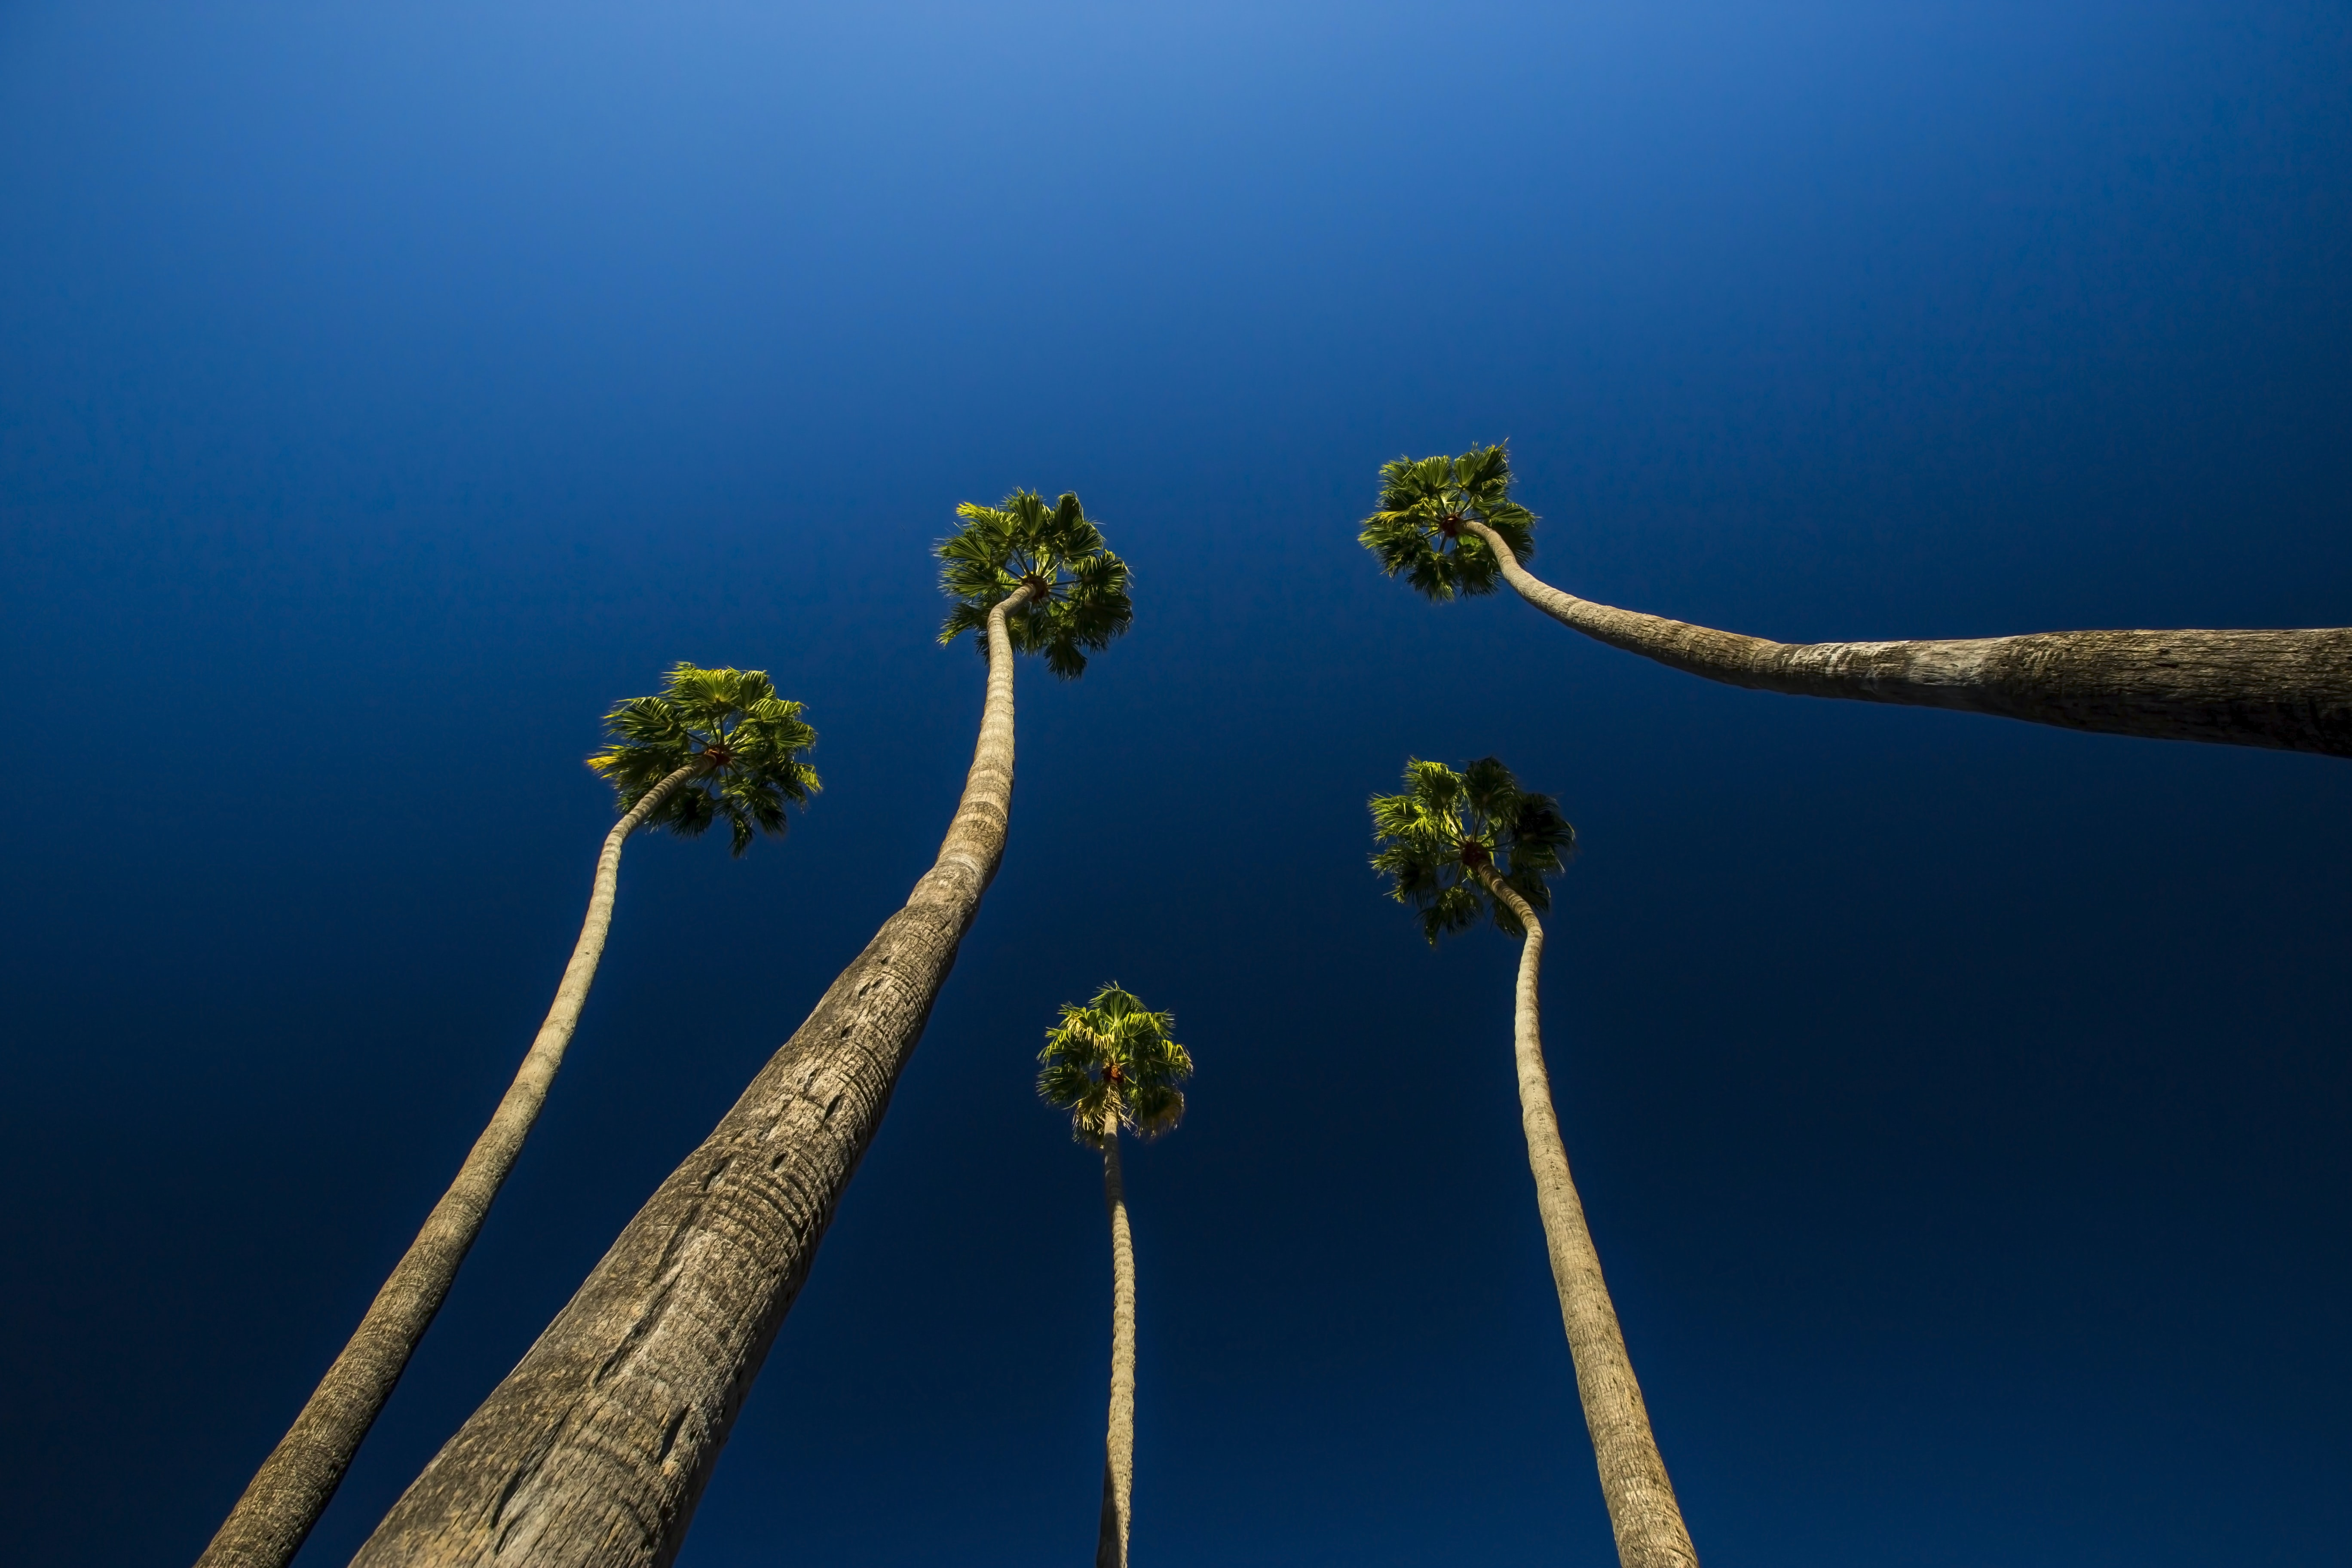 worm's-eye view photography of trees